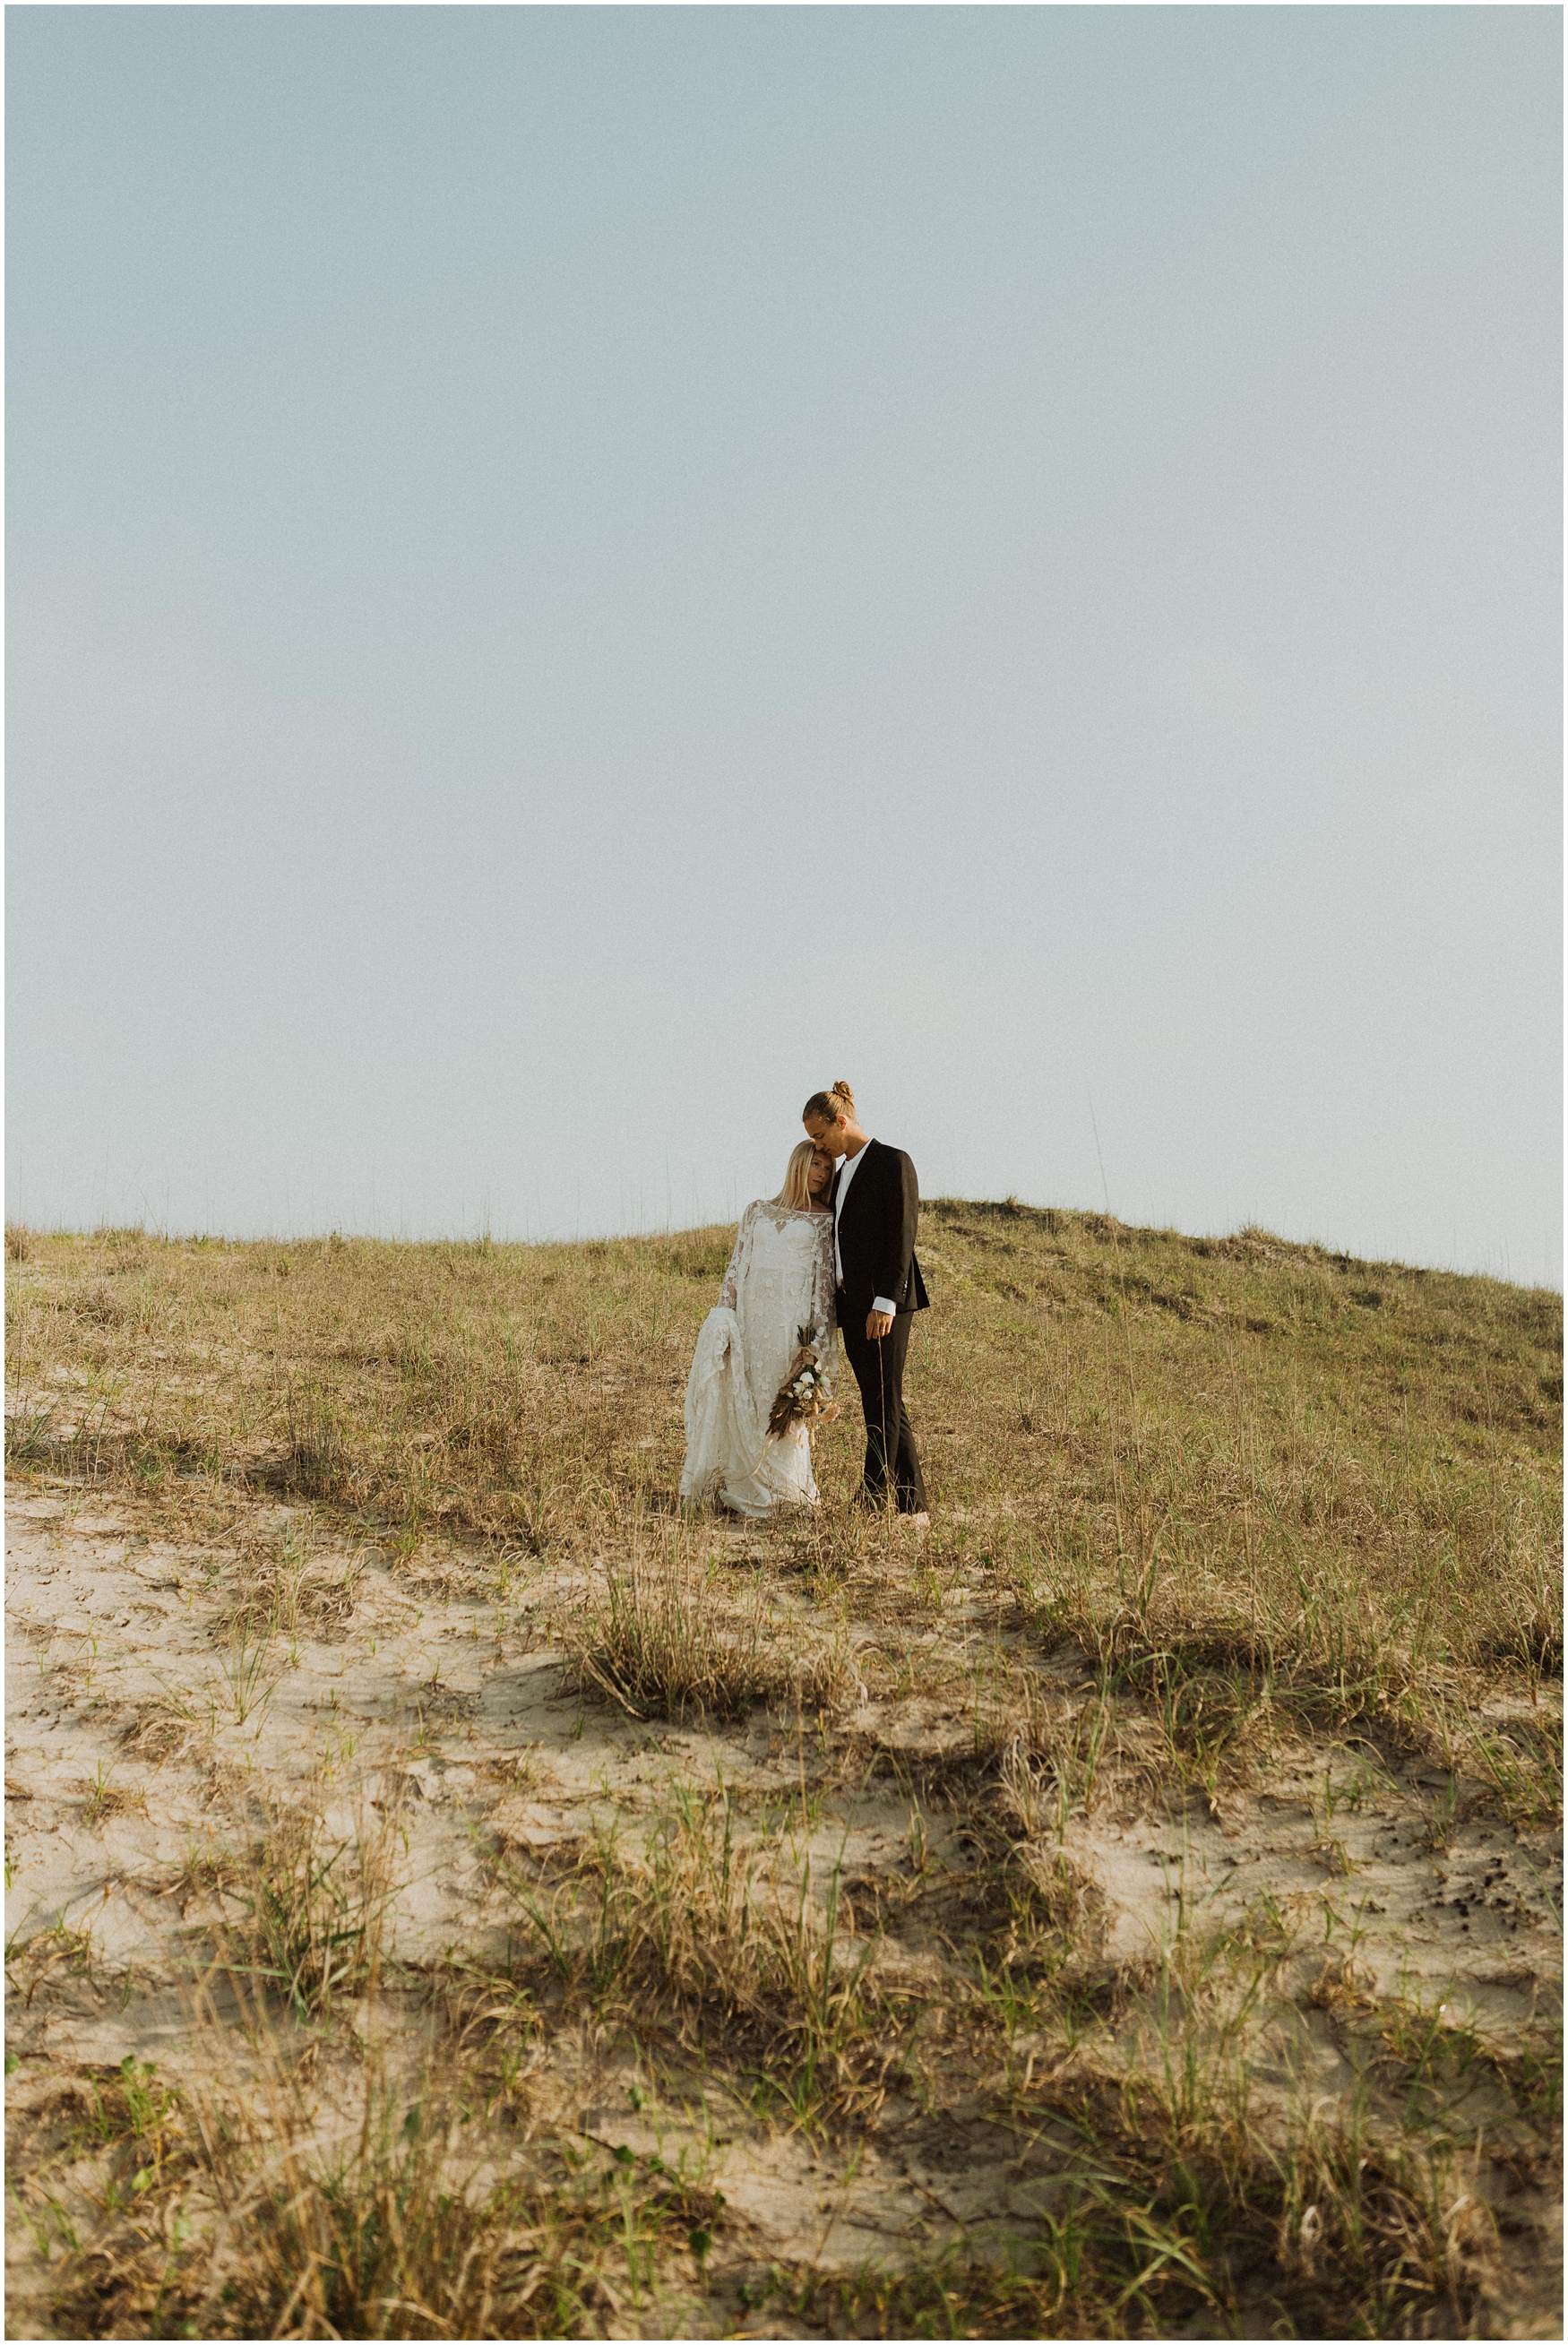 Hannah_Baldwin_Photography_Virginia_Beach_Elopement_Sunrise_0200.jpg